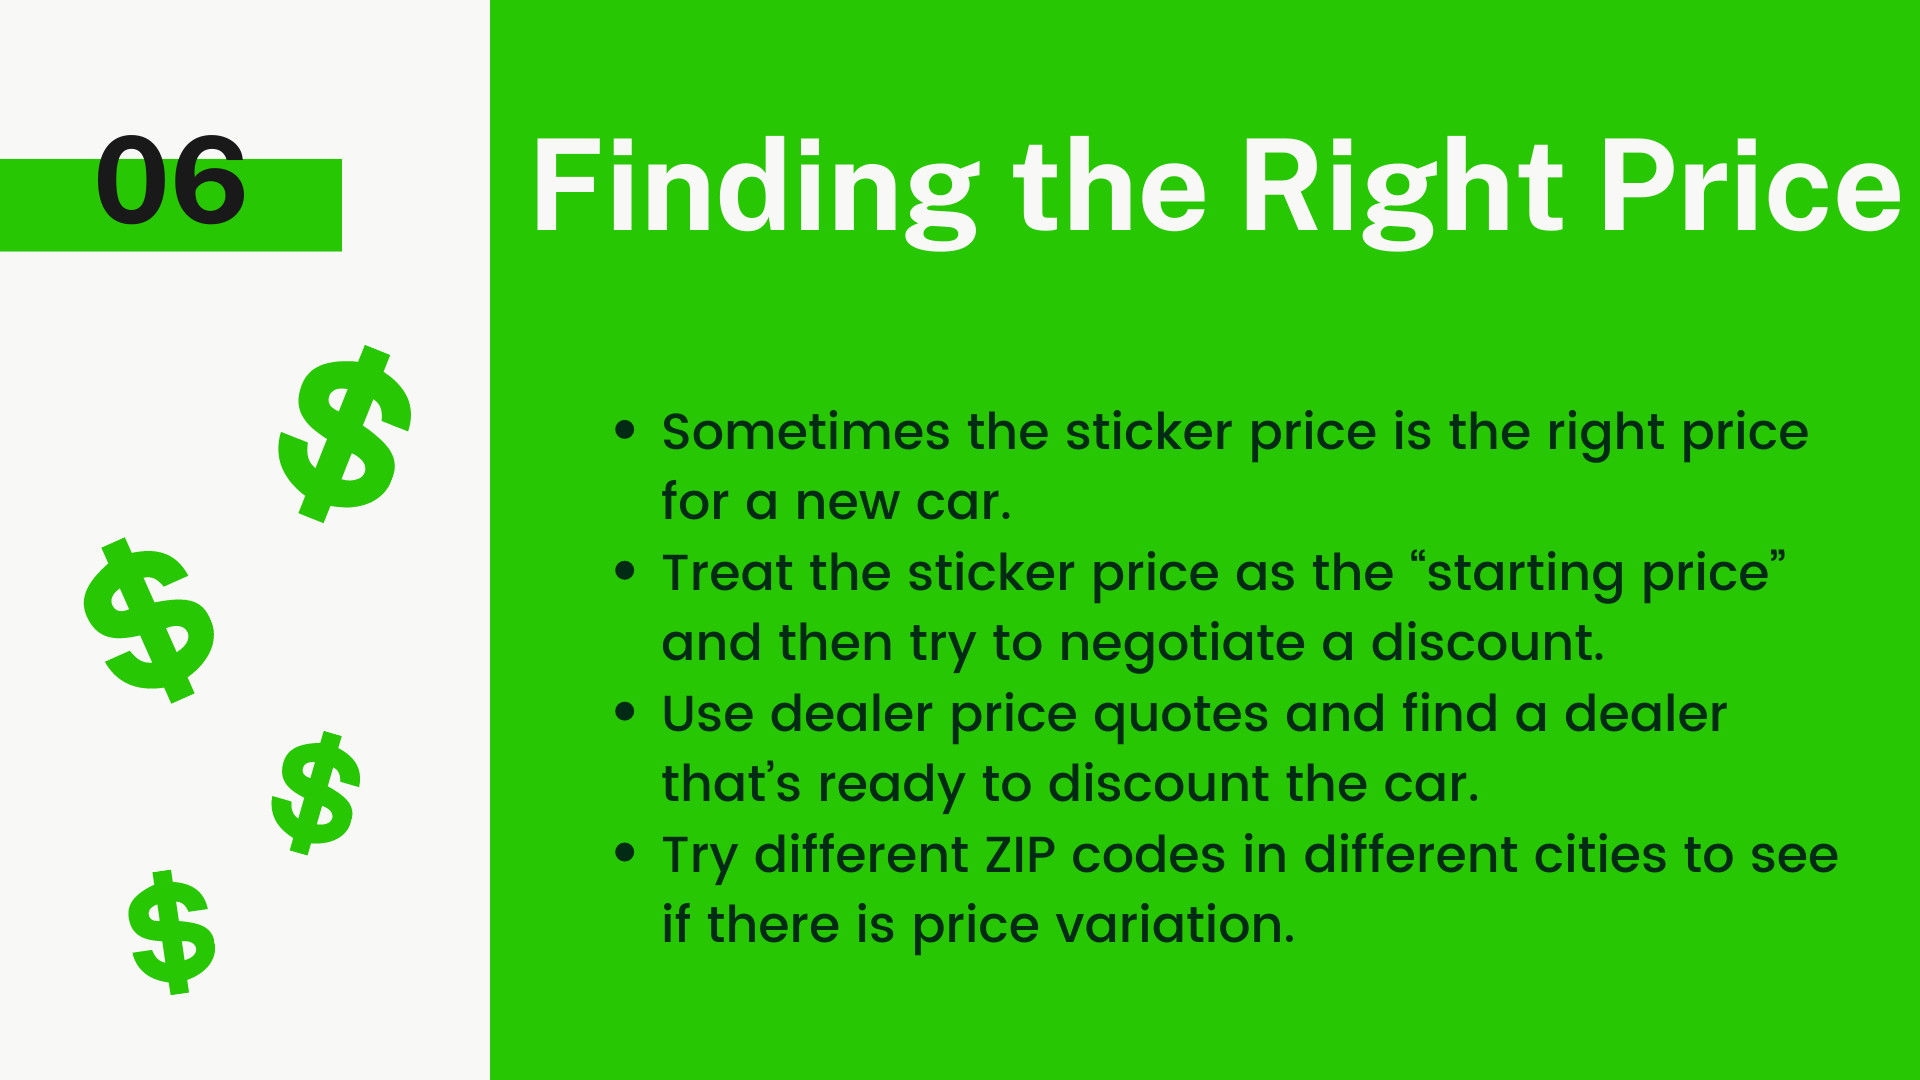 """Sometimes the sticker price is the right price for a new car. Treat the sticker price as the """"starting price"""" and then try to negotiate a discount. Use dealer price quotes and find a dealer that's ready to discount the car. Try different ZIP codes in different cities to see if there is price variation."""